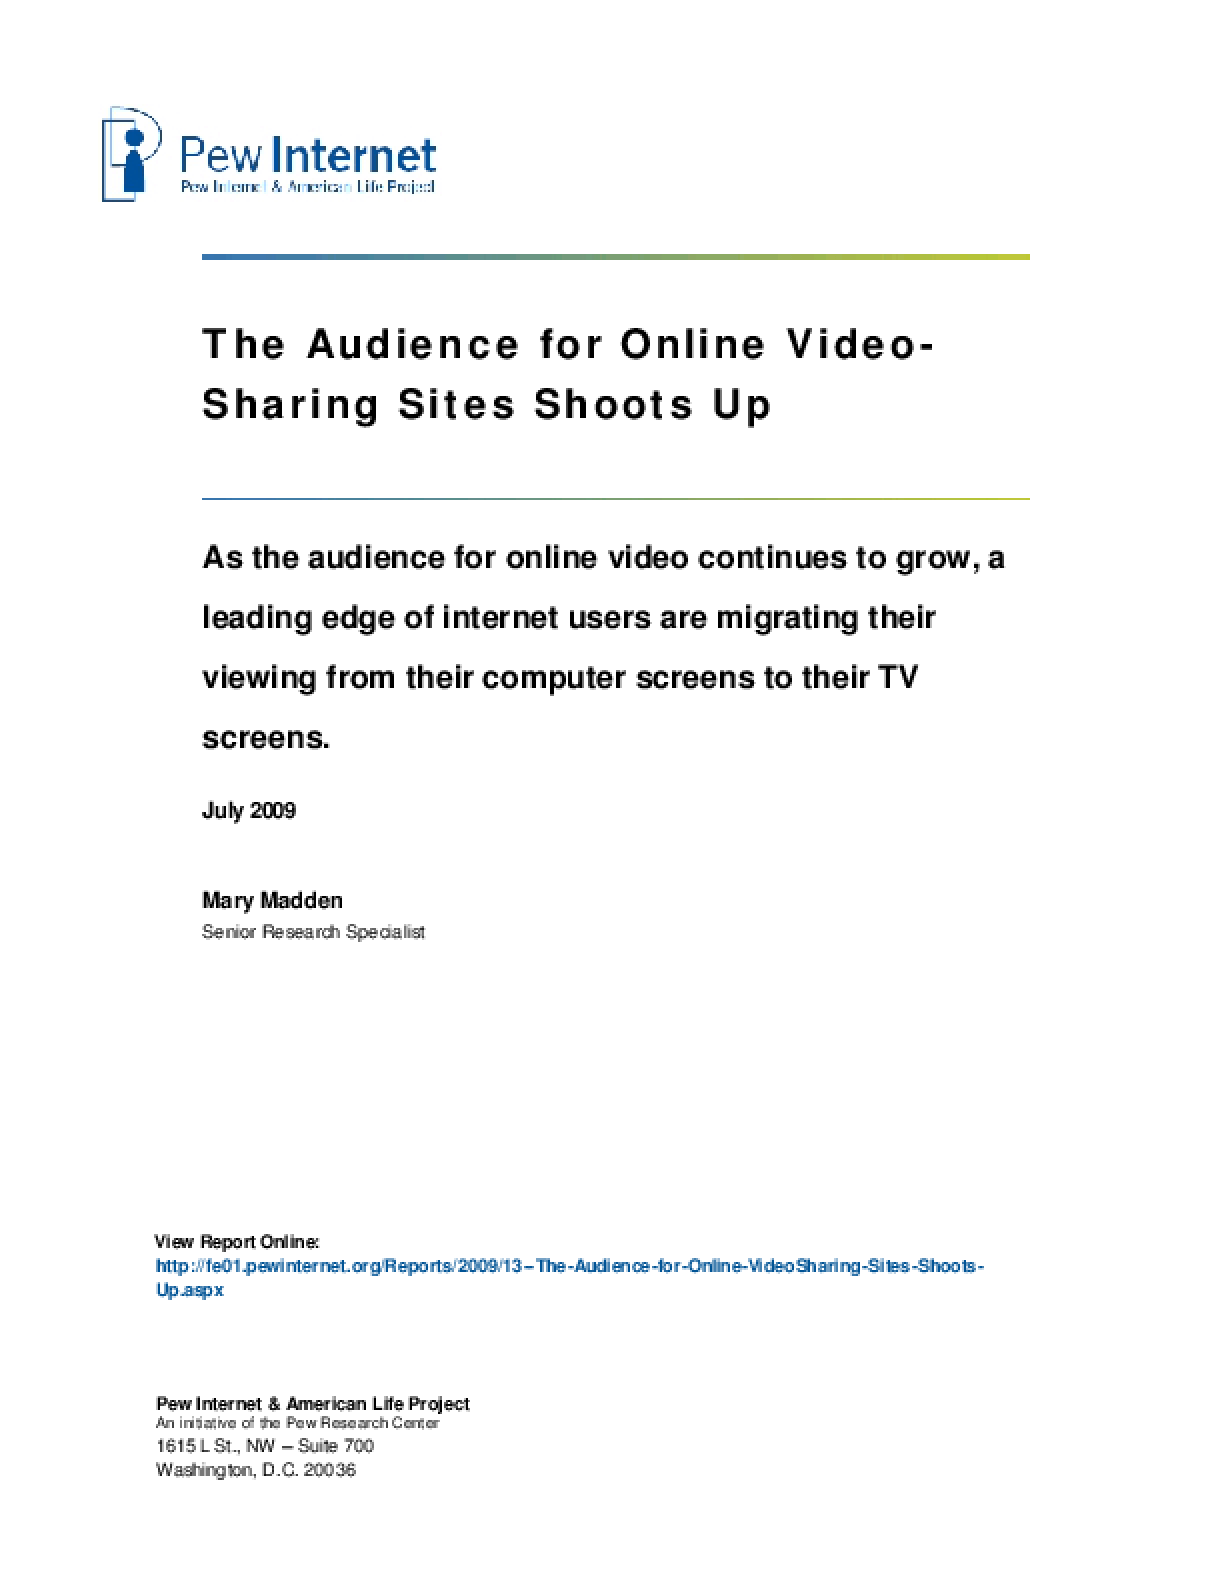 The Audience for Online Video-Sharing Sites Shoots Up